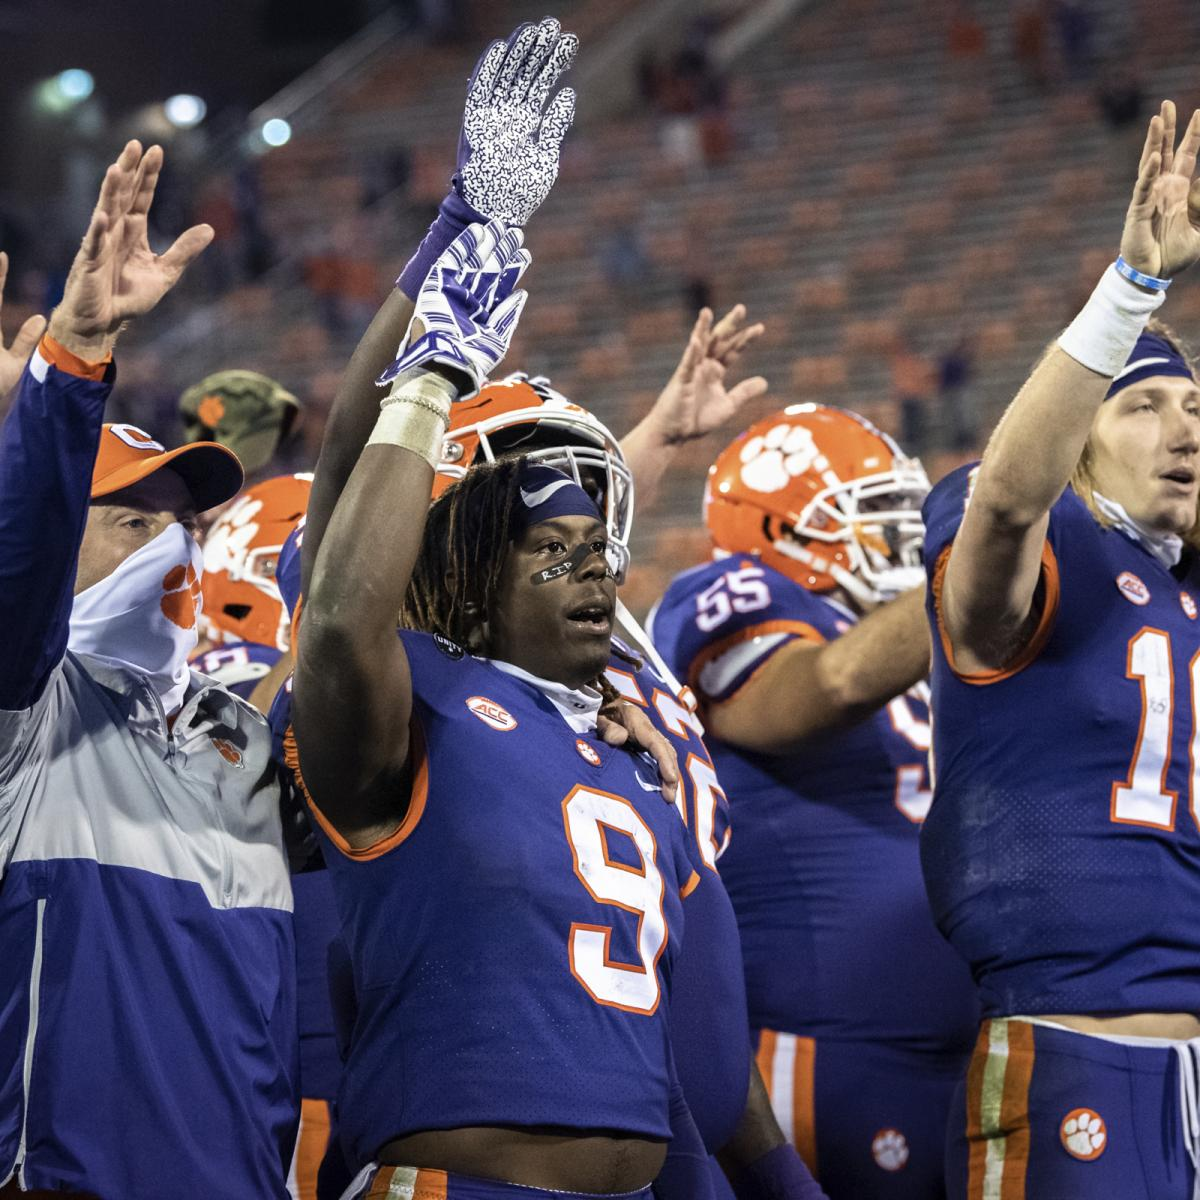 3 Takeaways from Clemson's Week 13 Win